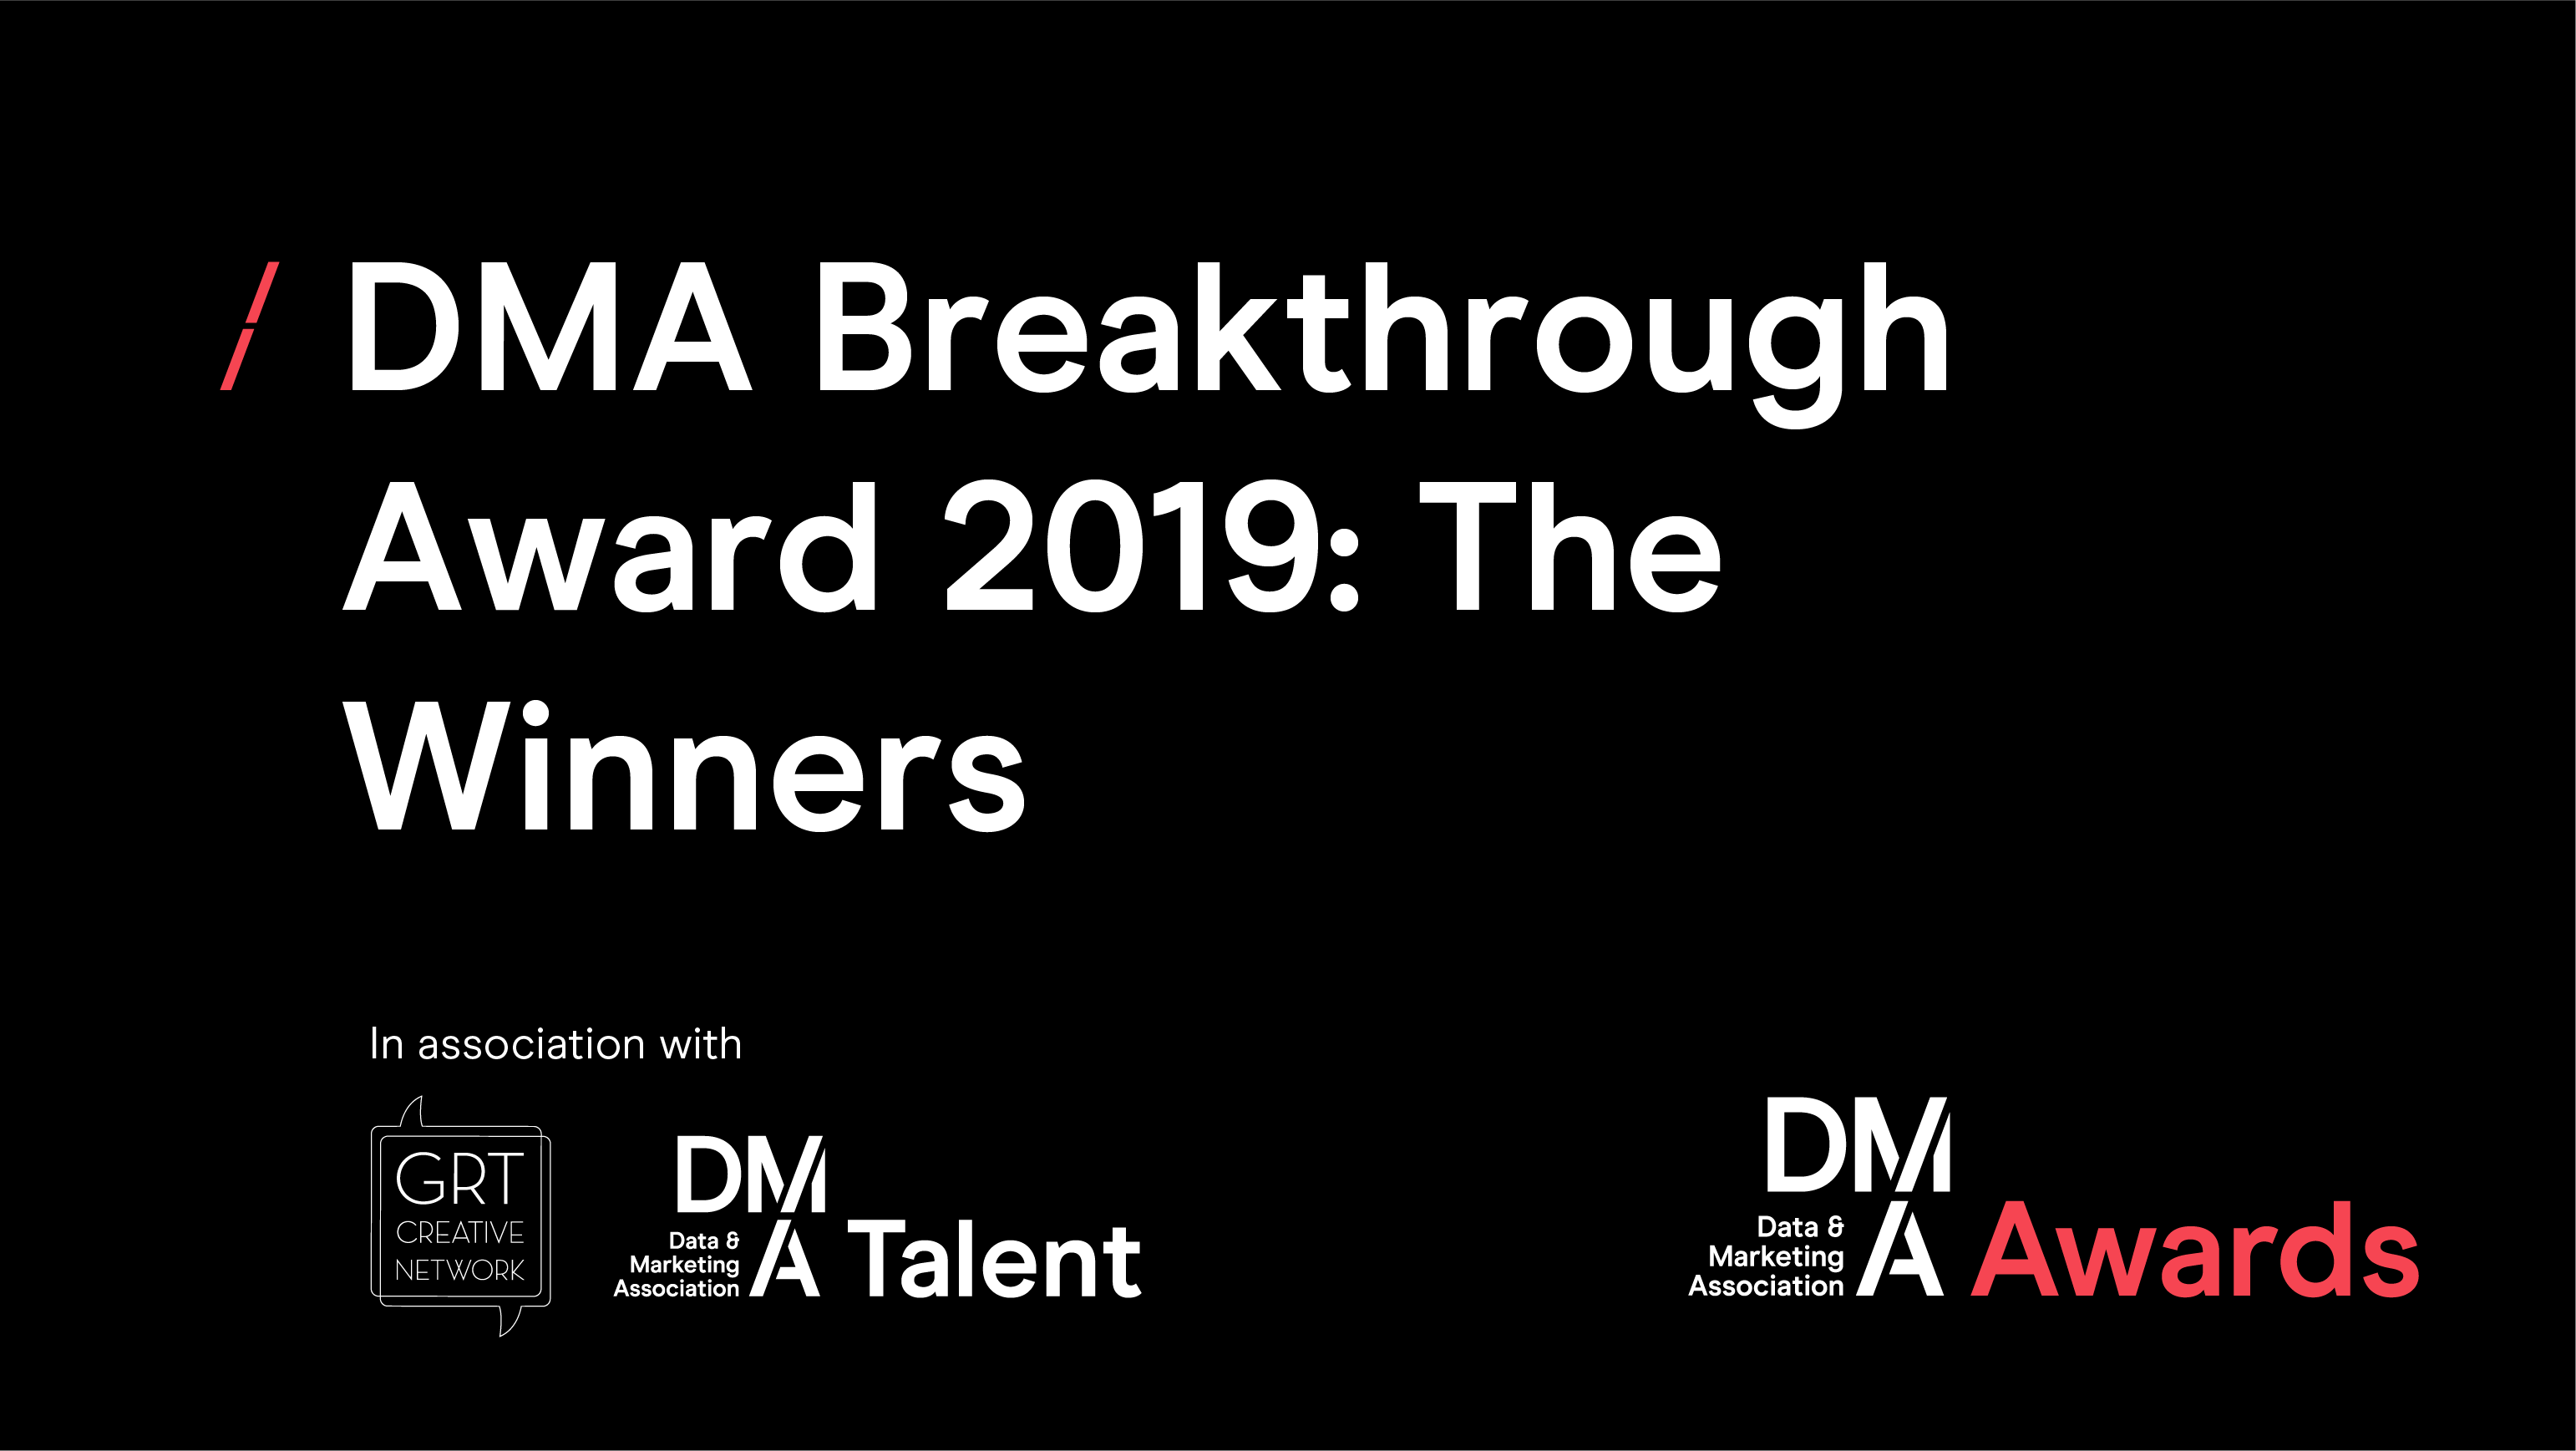 DMA Breakthrough Award 2019 The Winners.png